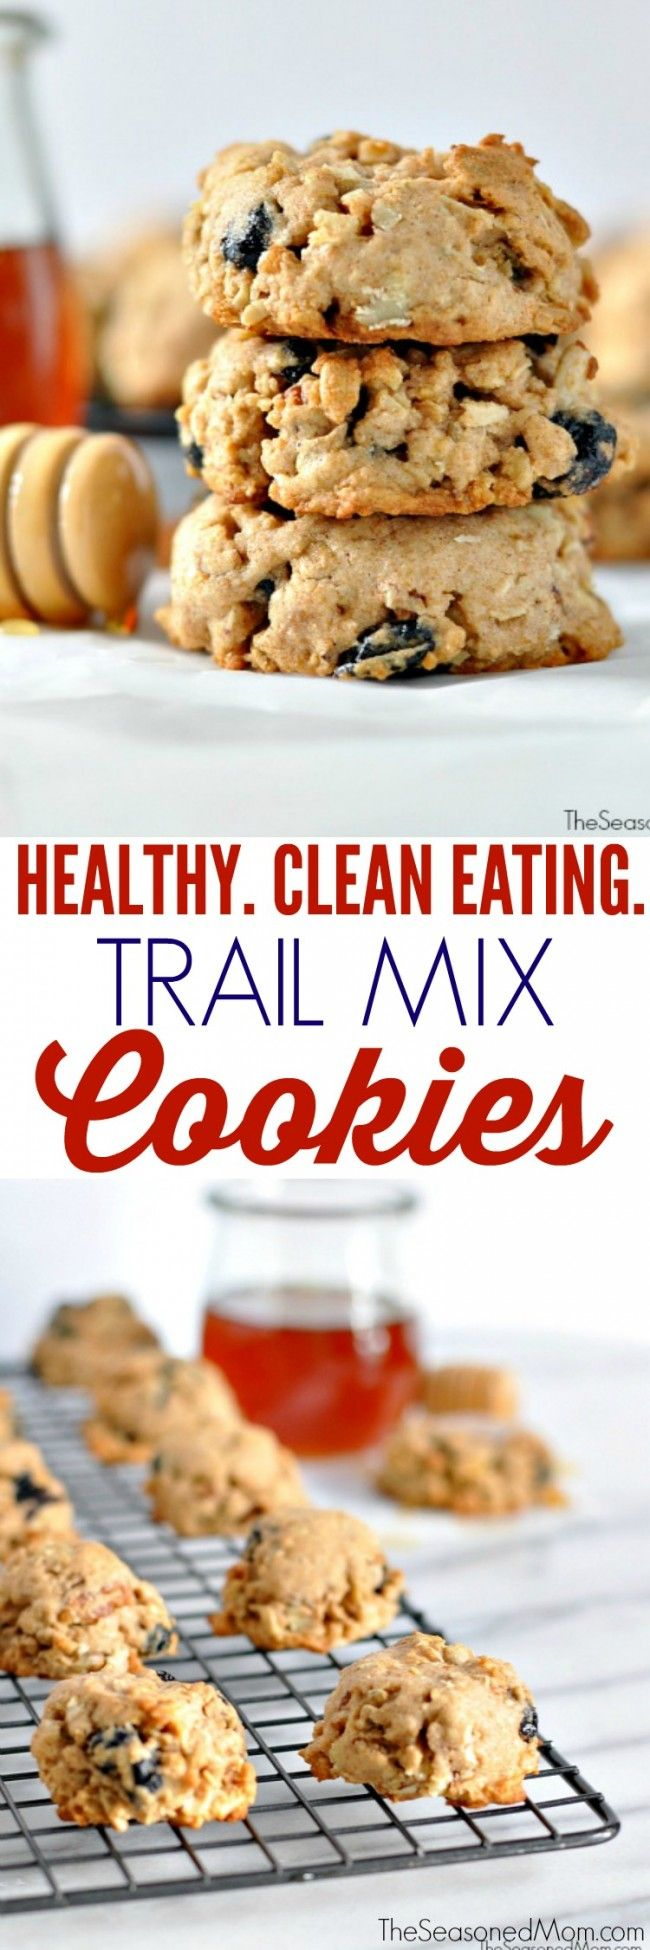 Healthy Trail Mix Cookies are the perfect treat that you don't have to feel guilty about.